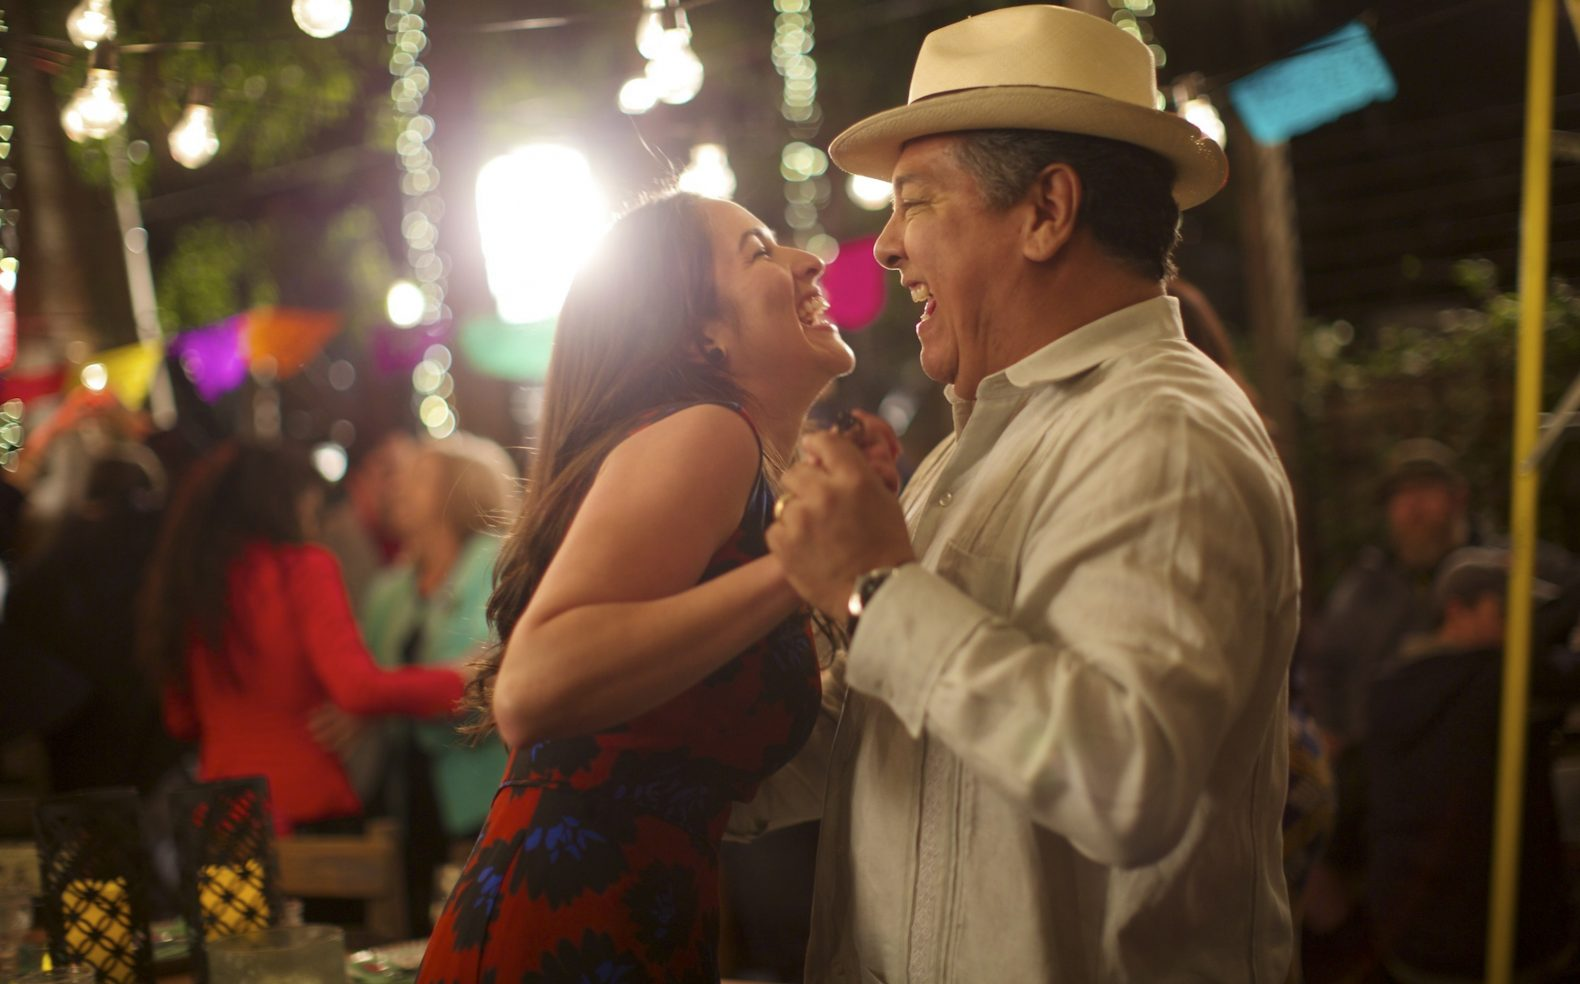 A father and adult daughter laughing and dancing at a festive party with string lights in the background.